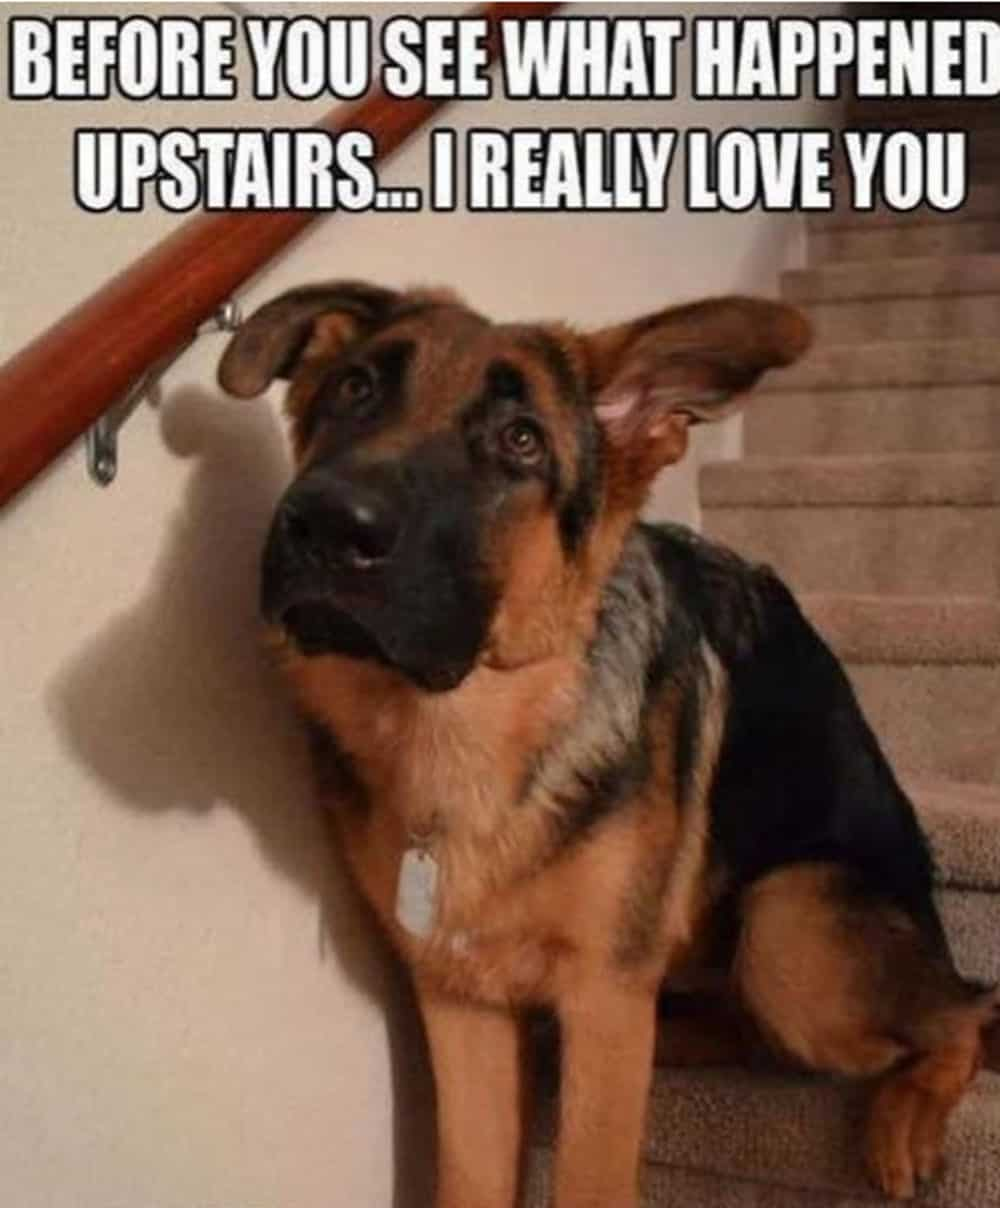 Before you see what happened upstairs… I really love you